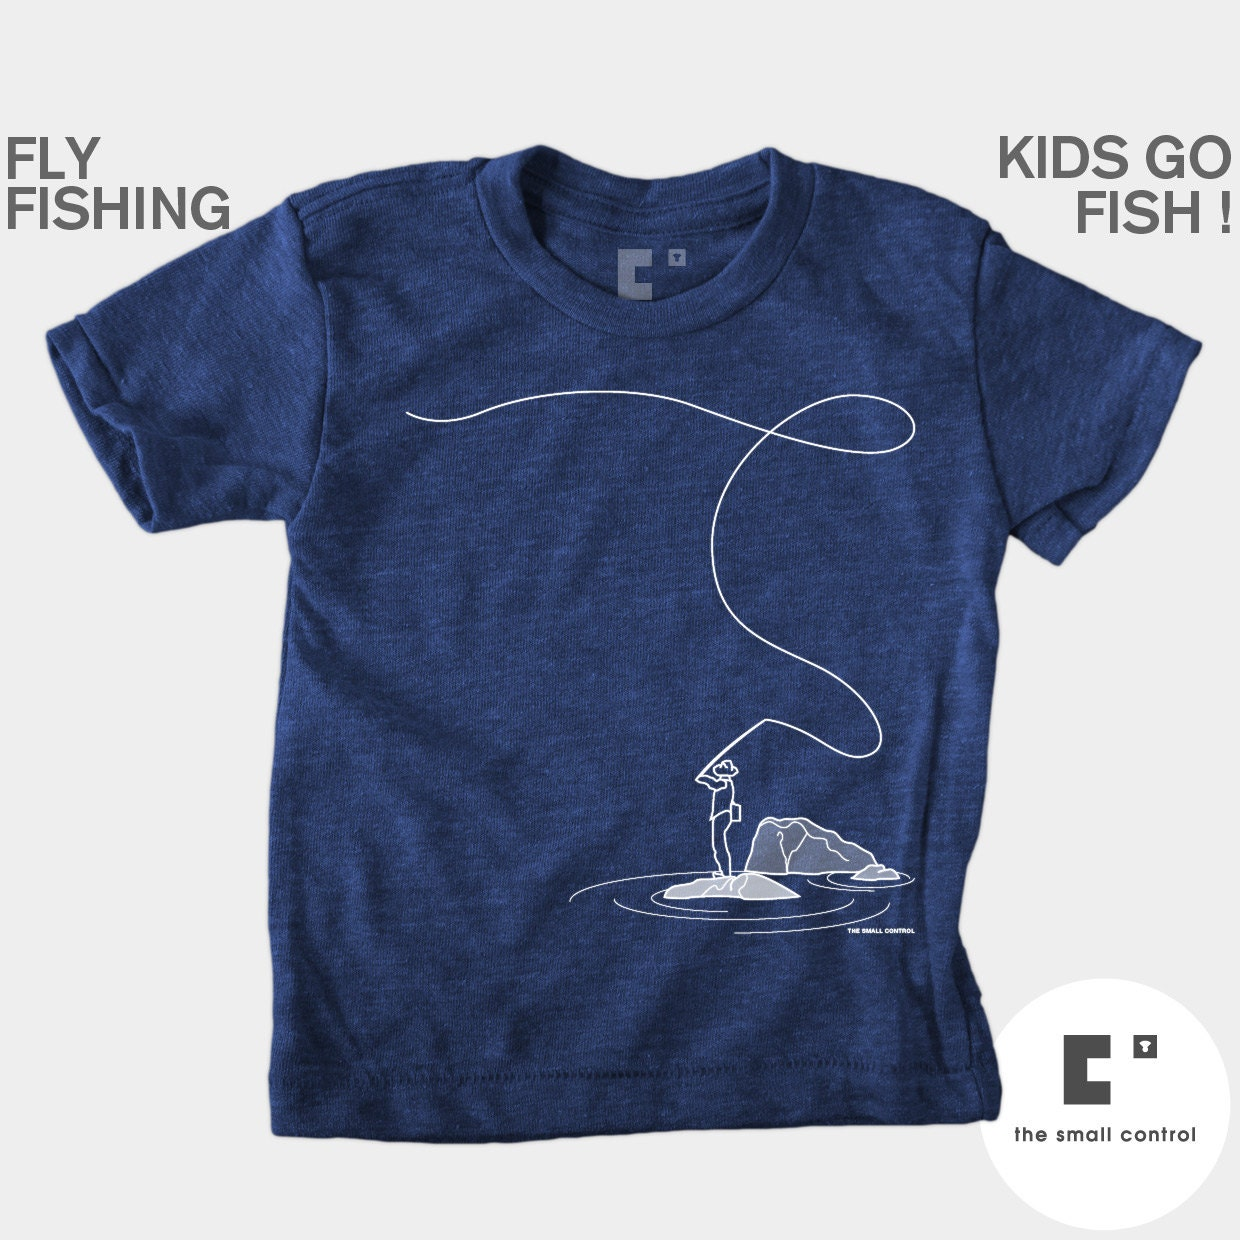 CLEARANCE Baby Boys Clothes Fly Fishing Boys Fishing